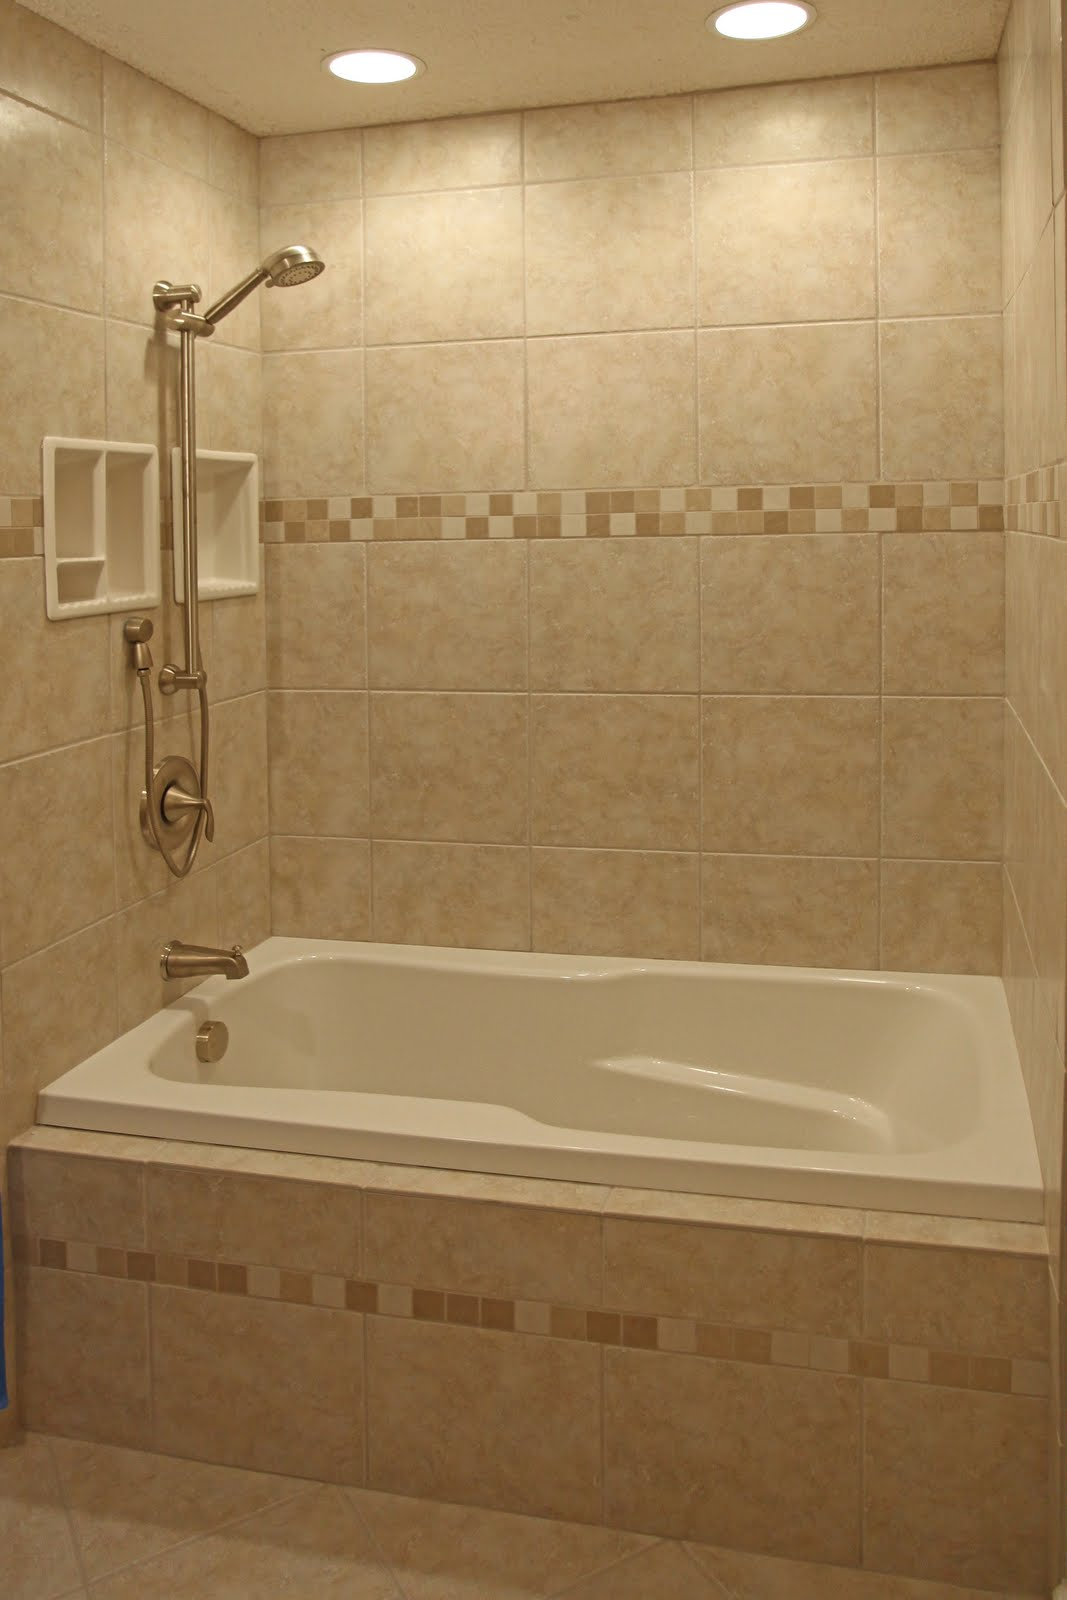 Bathroom Wall Tile Designs Large And Beautiful Photos Photo To Select Bathroom Wall Tile Designs Design Your Home